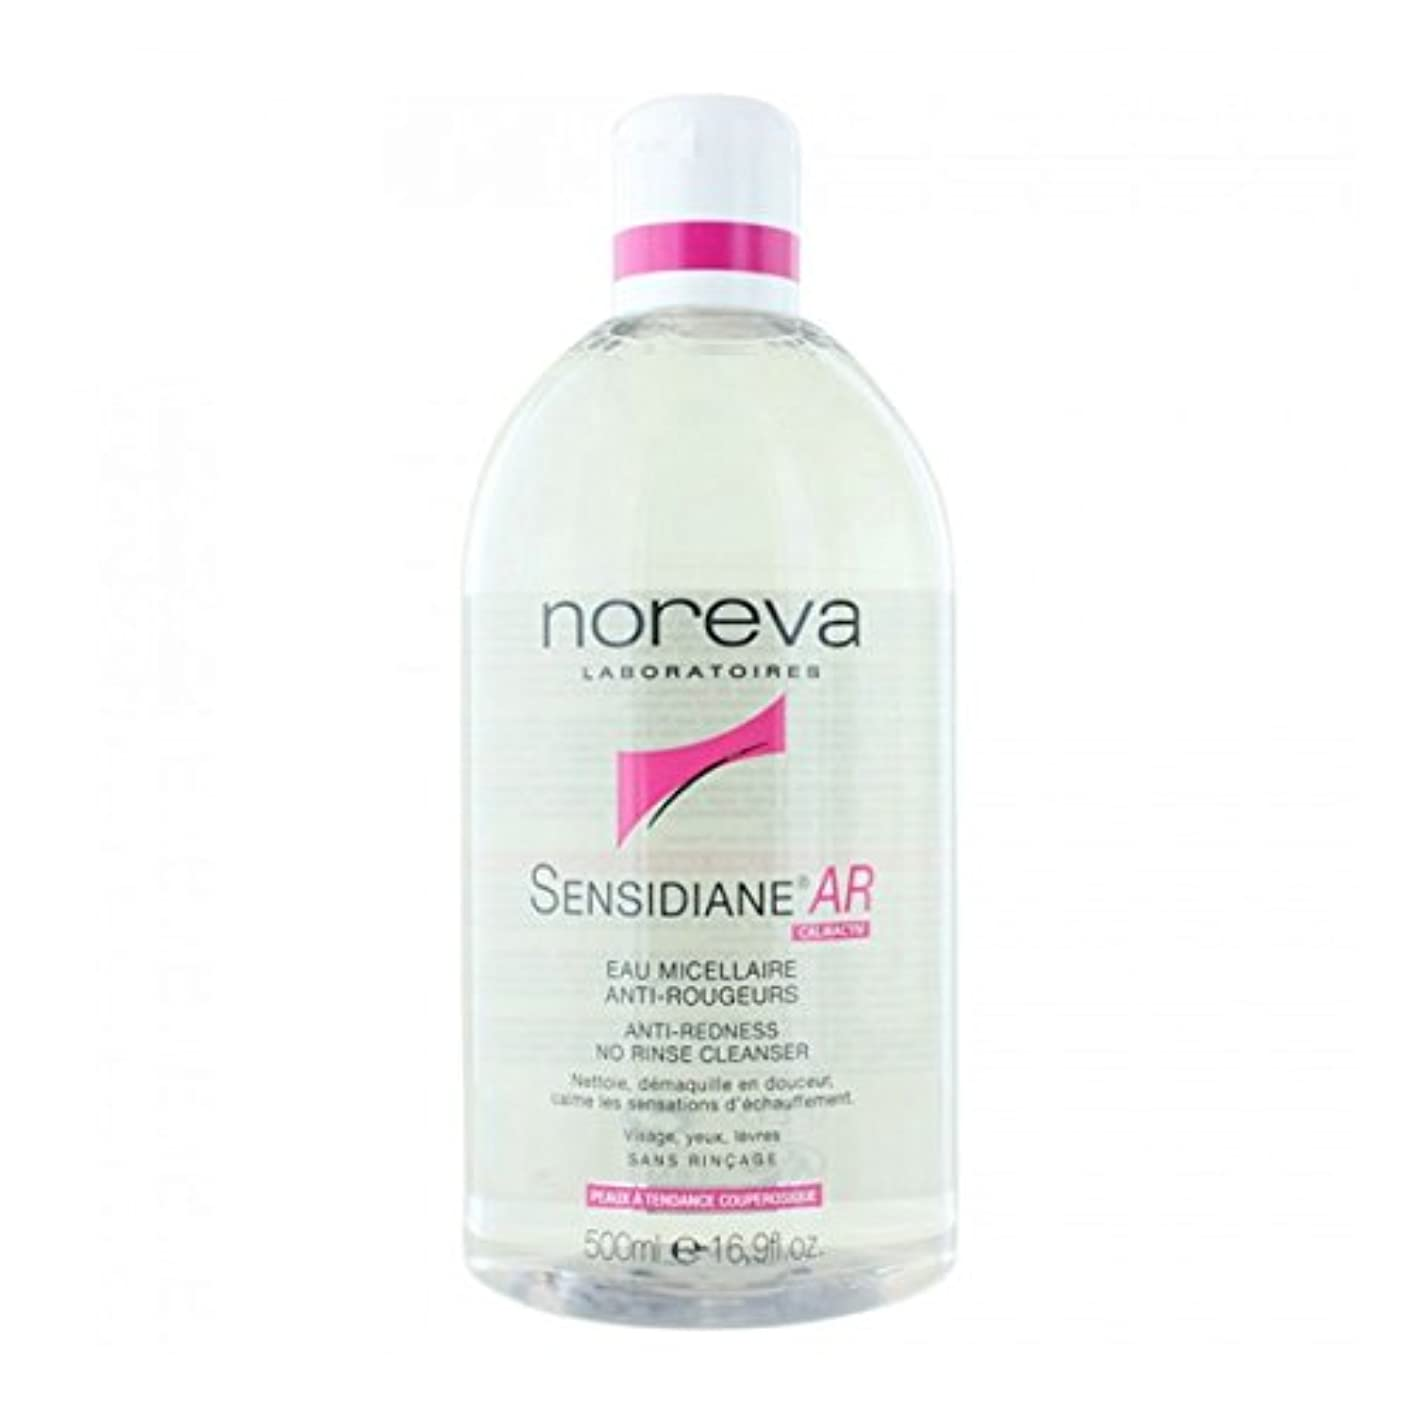 保存繕うミニチュアNoreva Sensidiane Ar Anti-redness No Rinse Cleanser 500ml [並行輸入品]